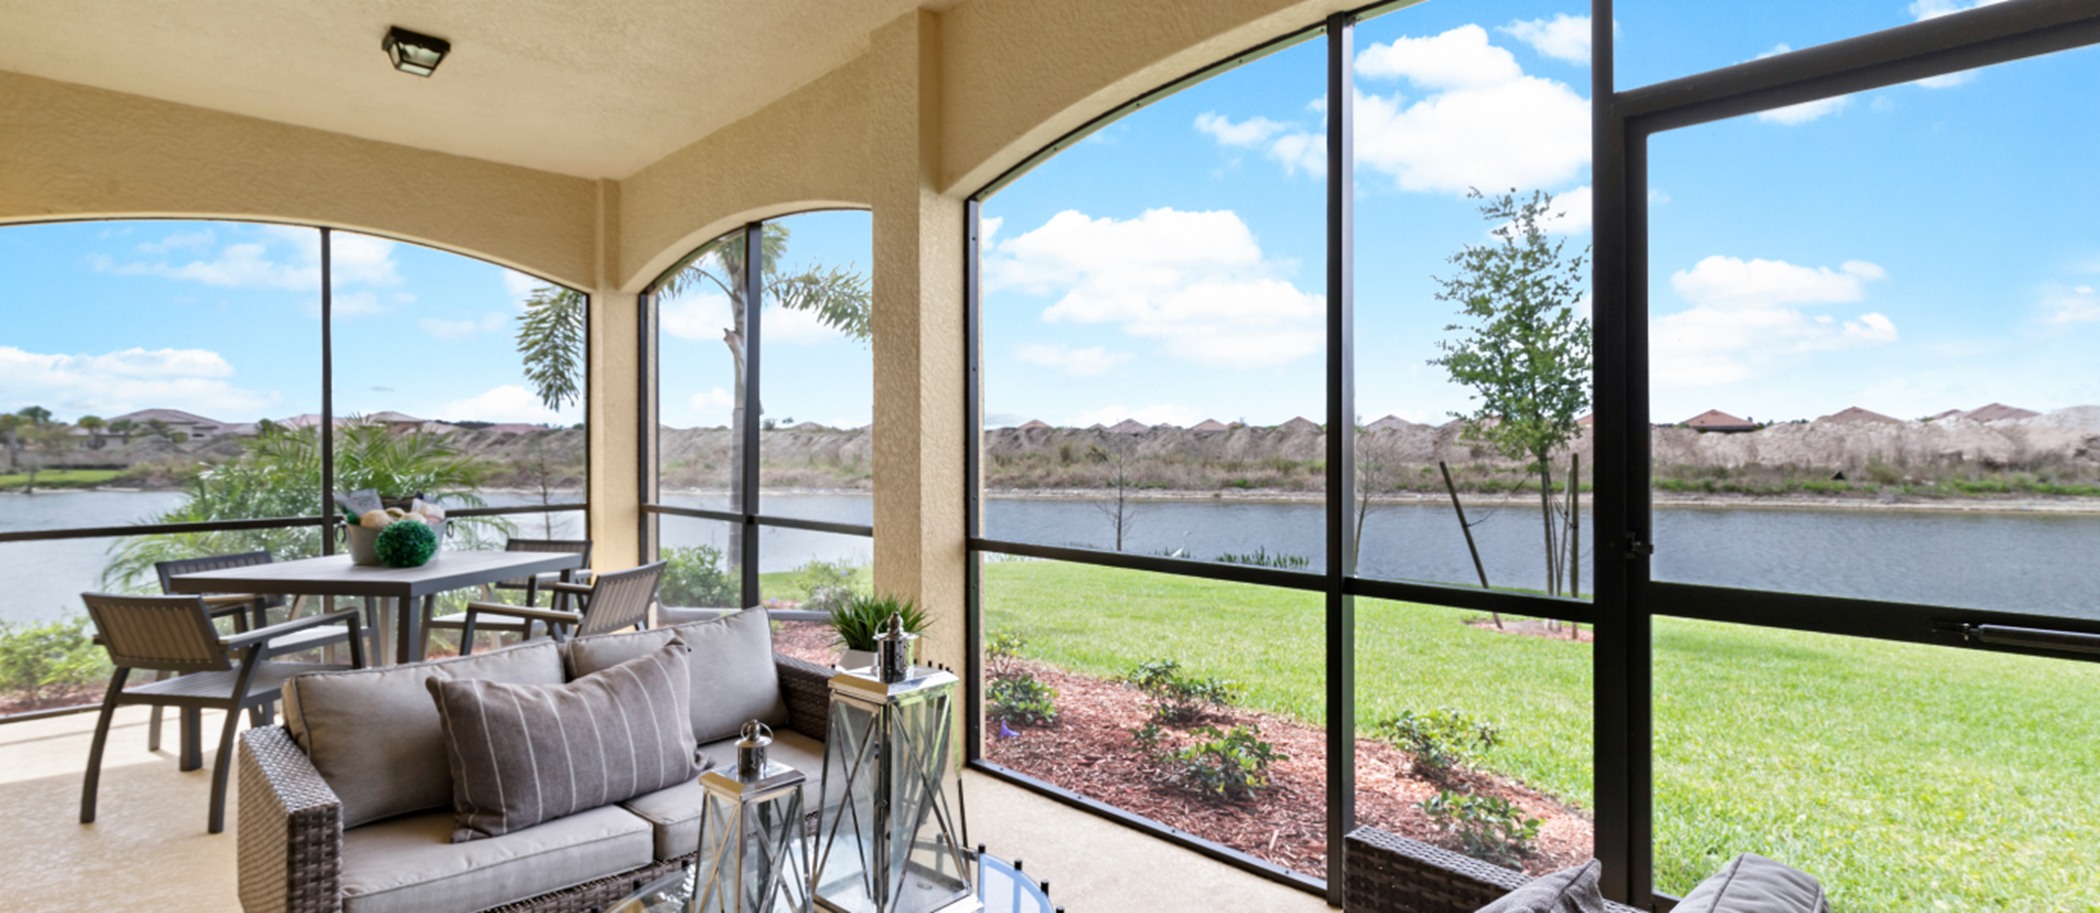 Heritage Landing Coach Homes Overview